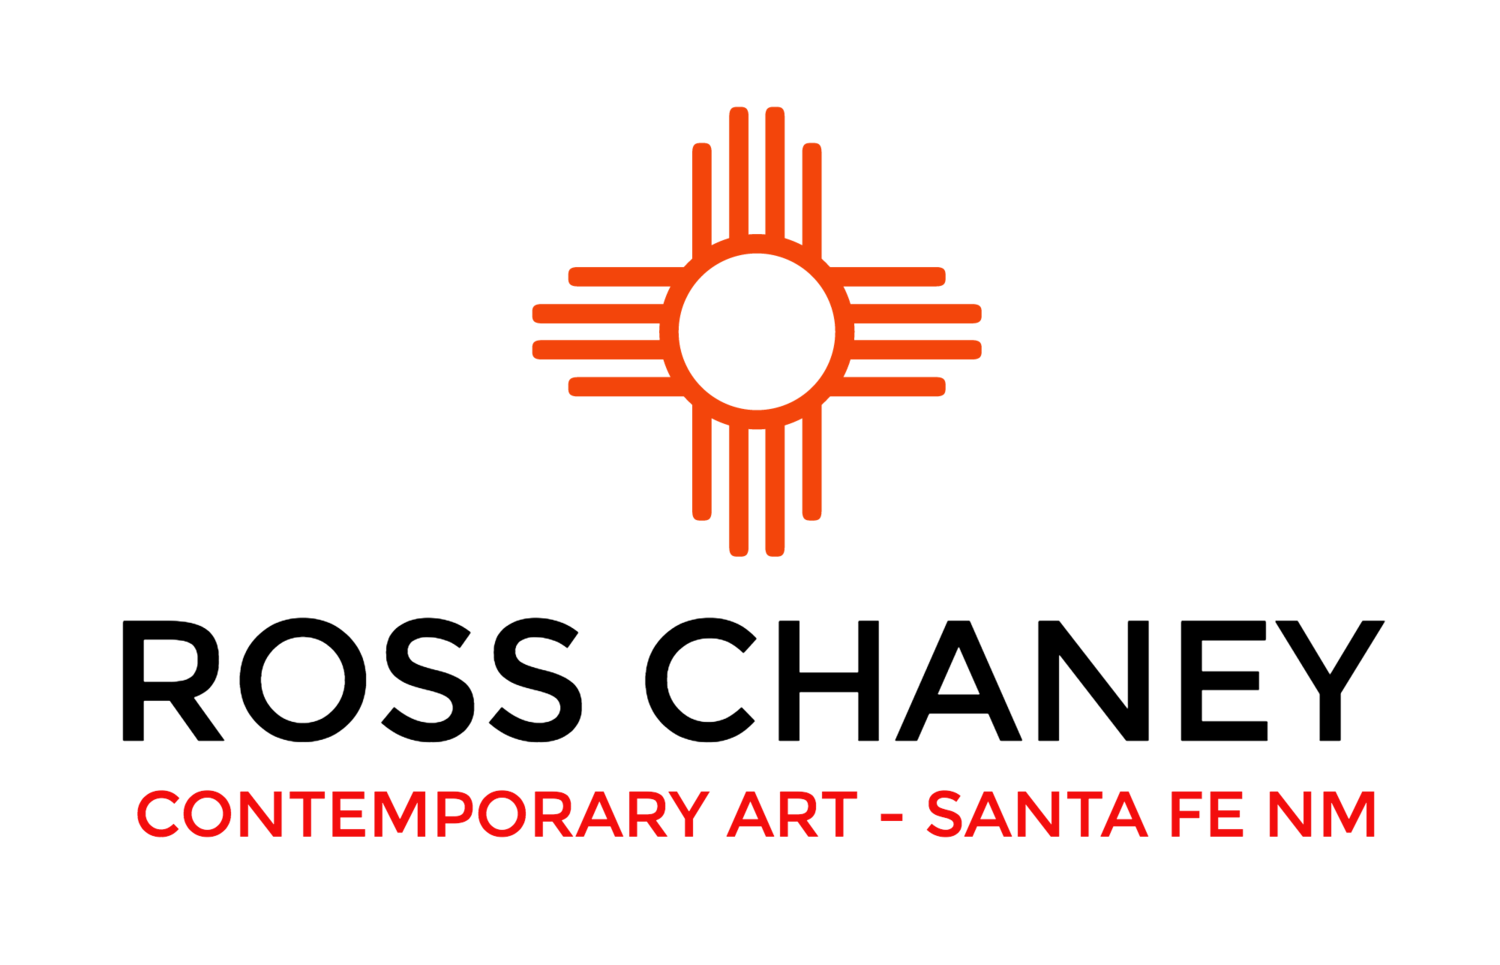 Ross Chaney Contemporary Art - Santa Fe, NM